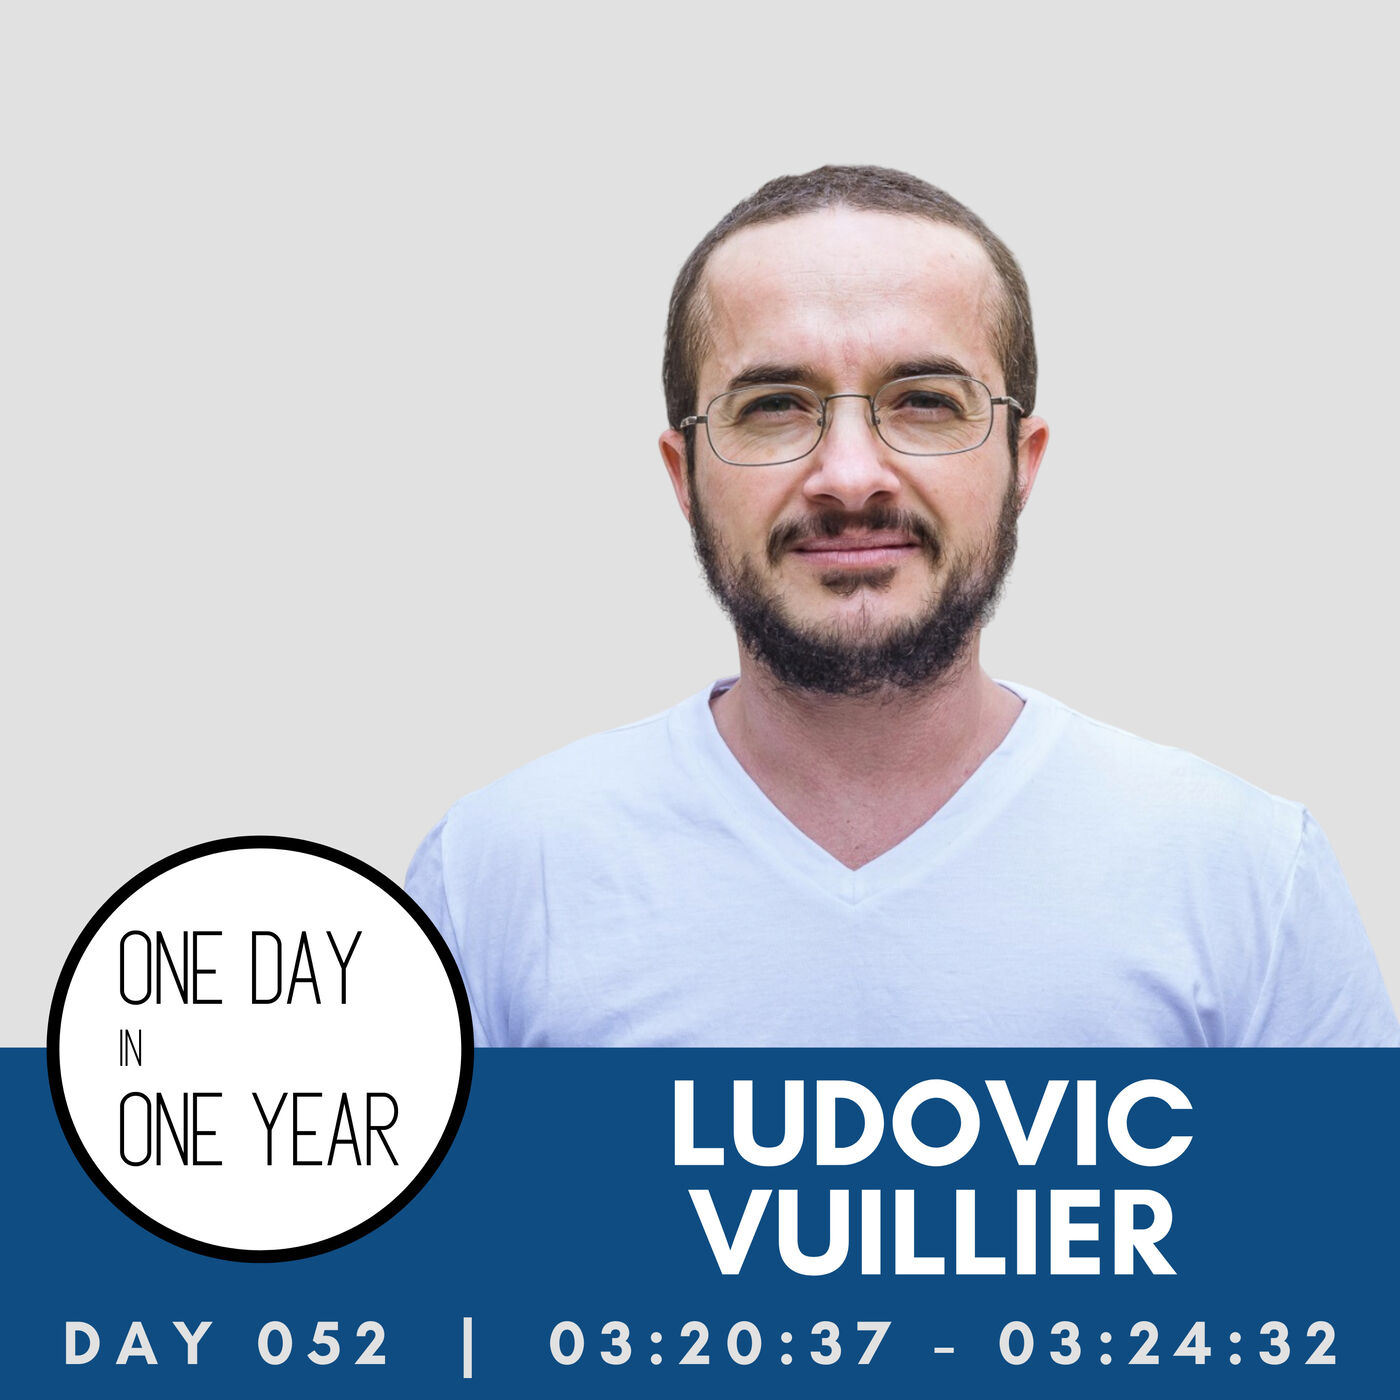 052 - Ludovic Vuillier  |  03:20:37 - 03:24:32